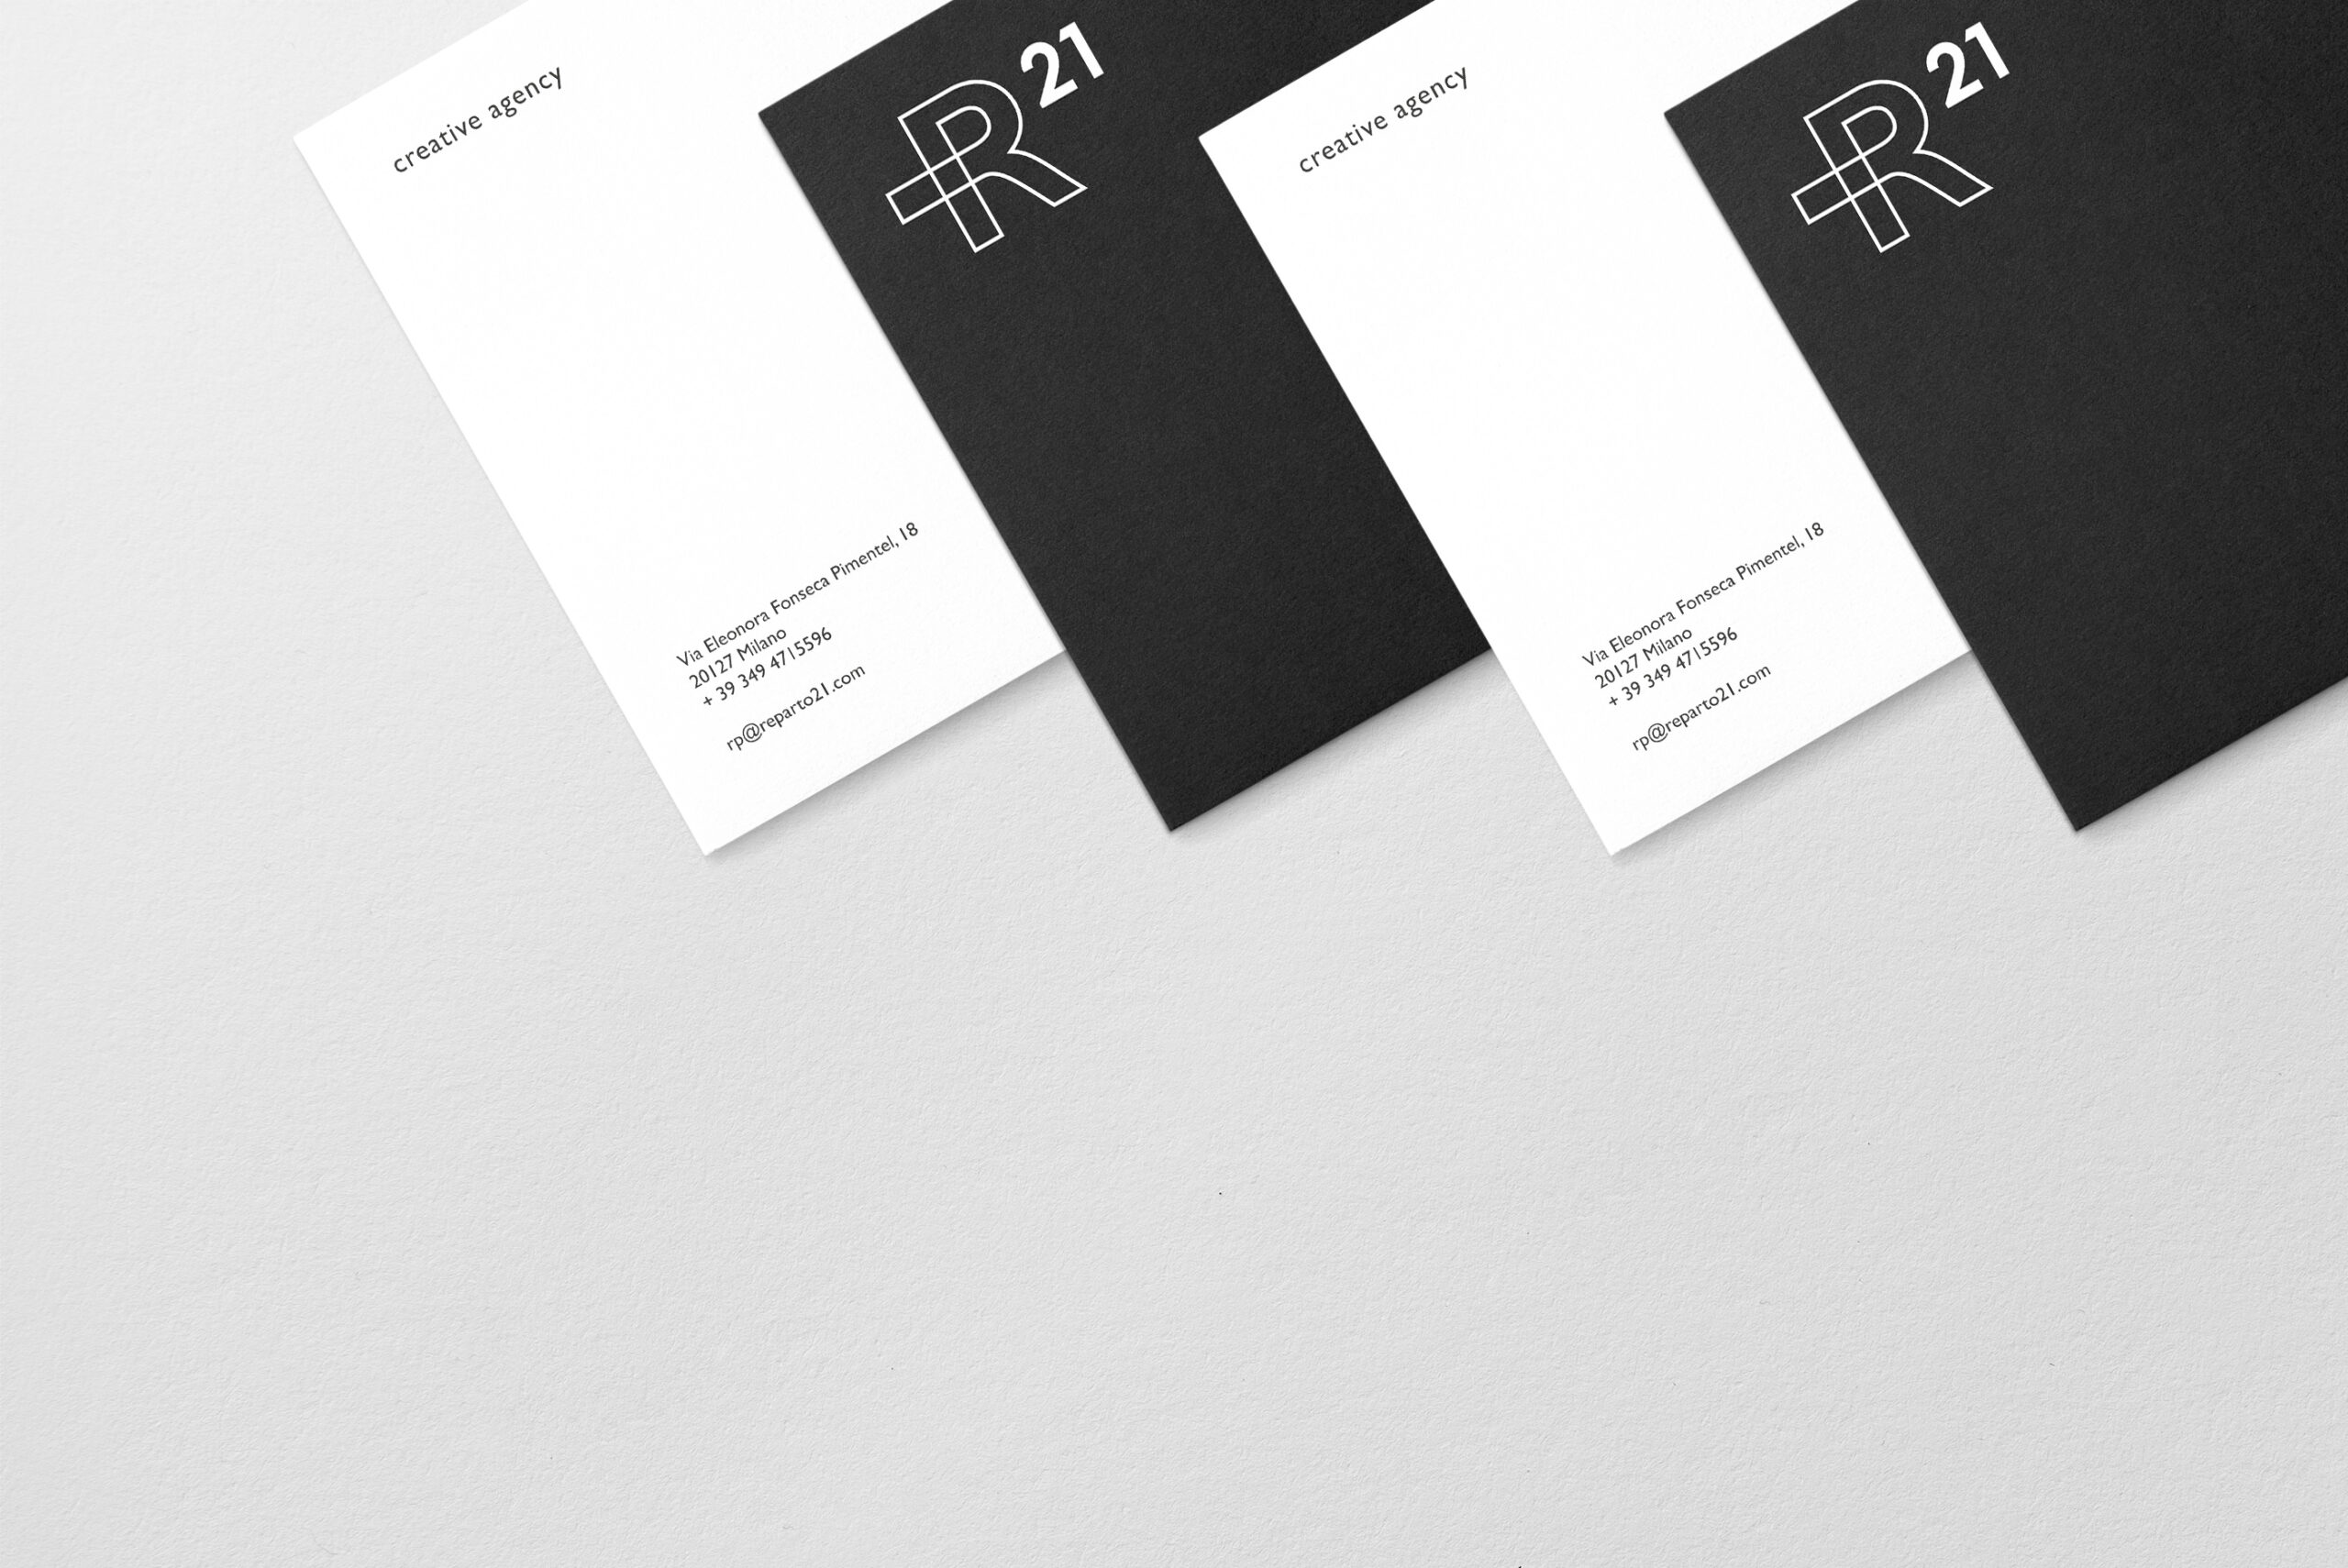 R21 brand identity design graphic drogheria studio cards